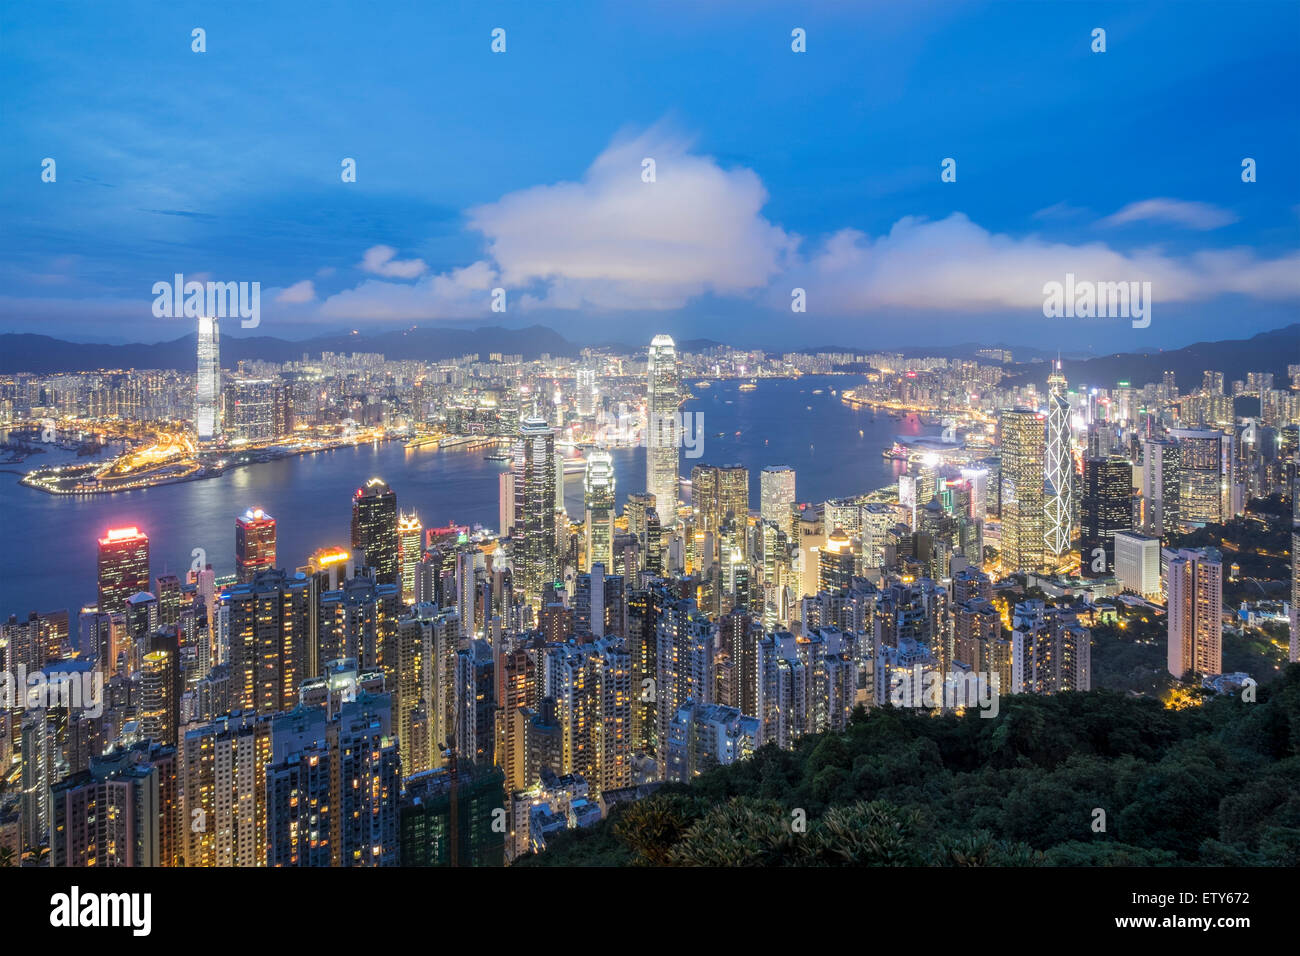 Night skyline of Hong Kong and Victoria Harbour from The Peak on a clear day - Stock Image